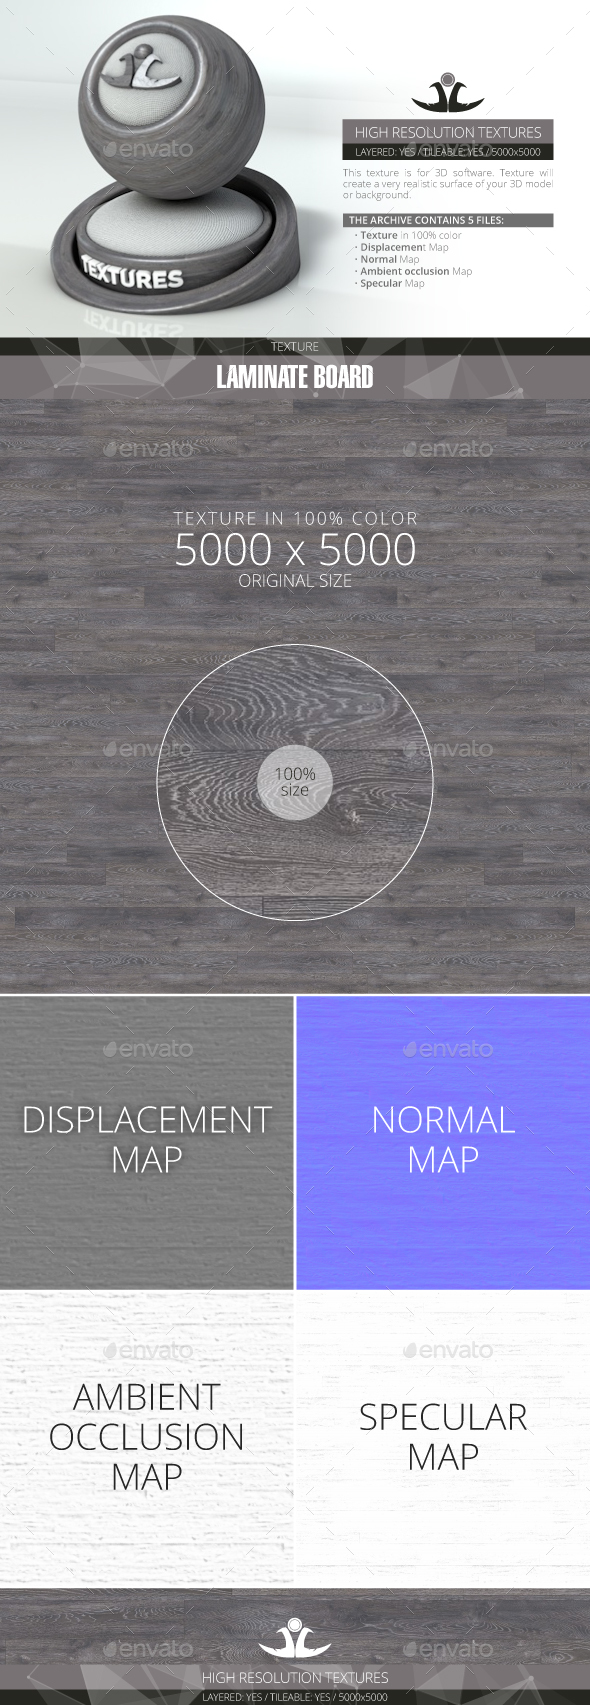 Laminate Board 50 - 3DOcean Item for Sale